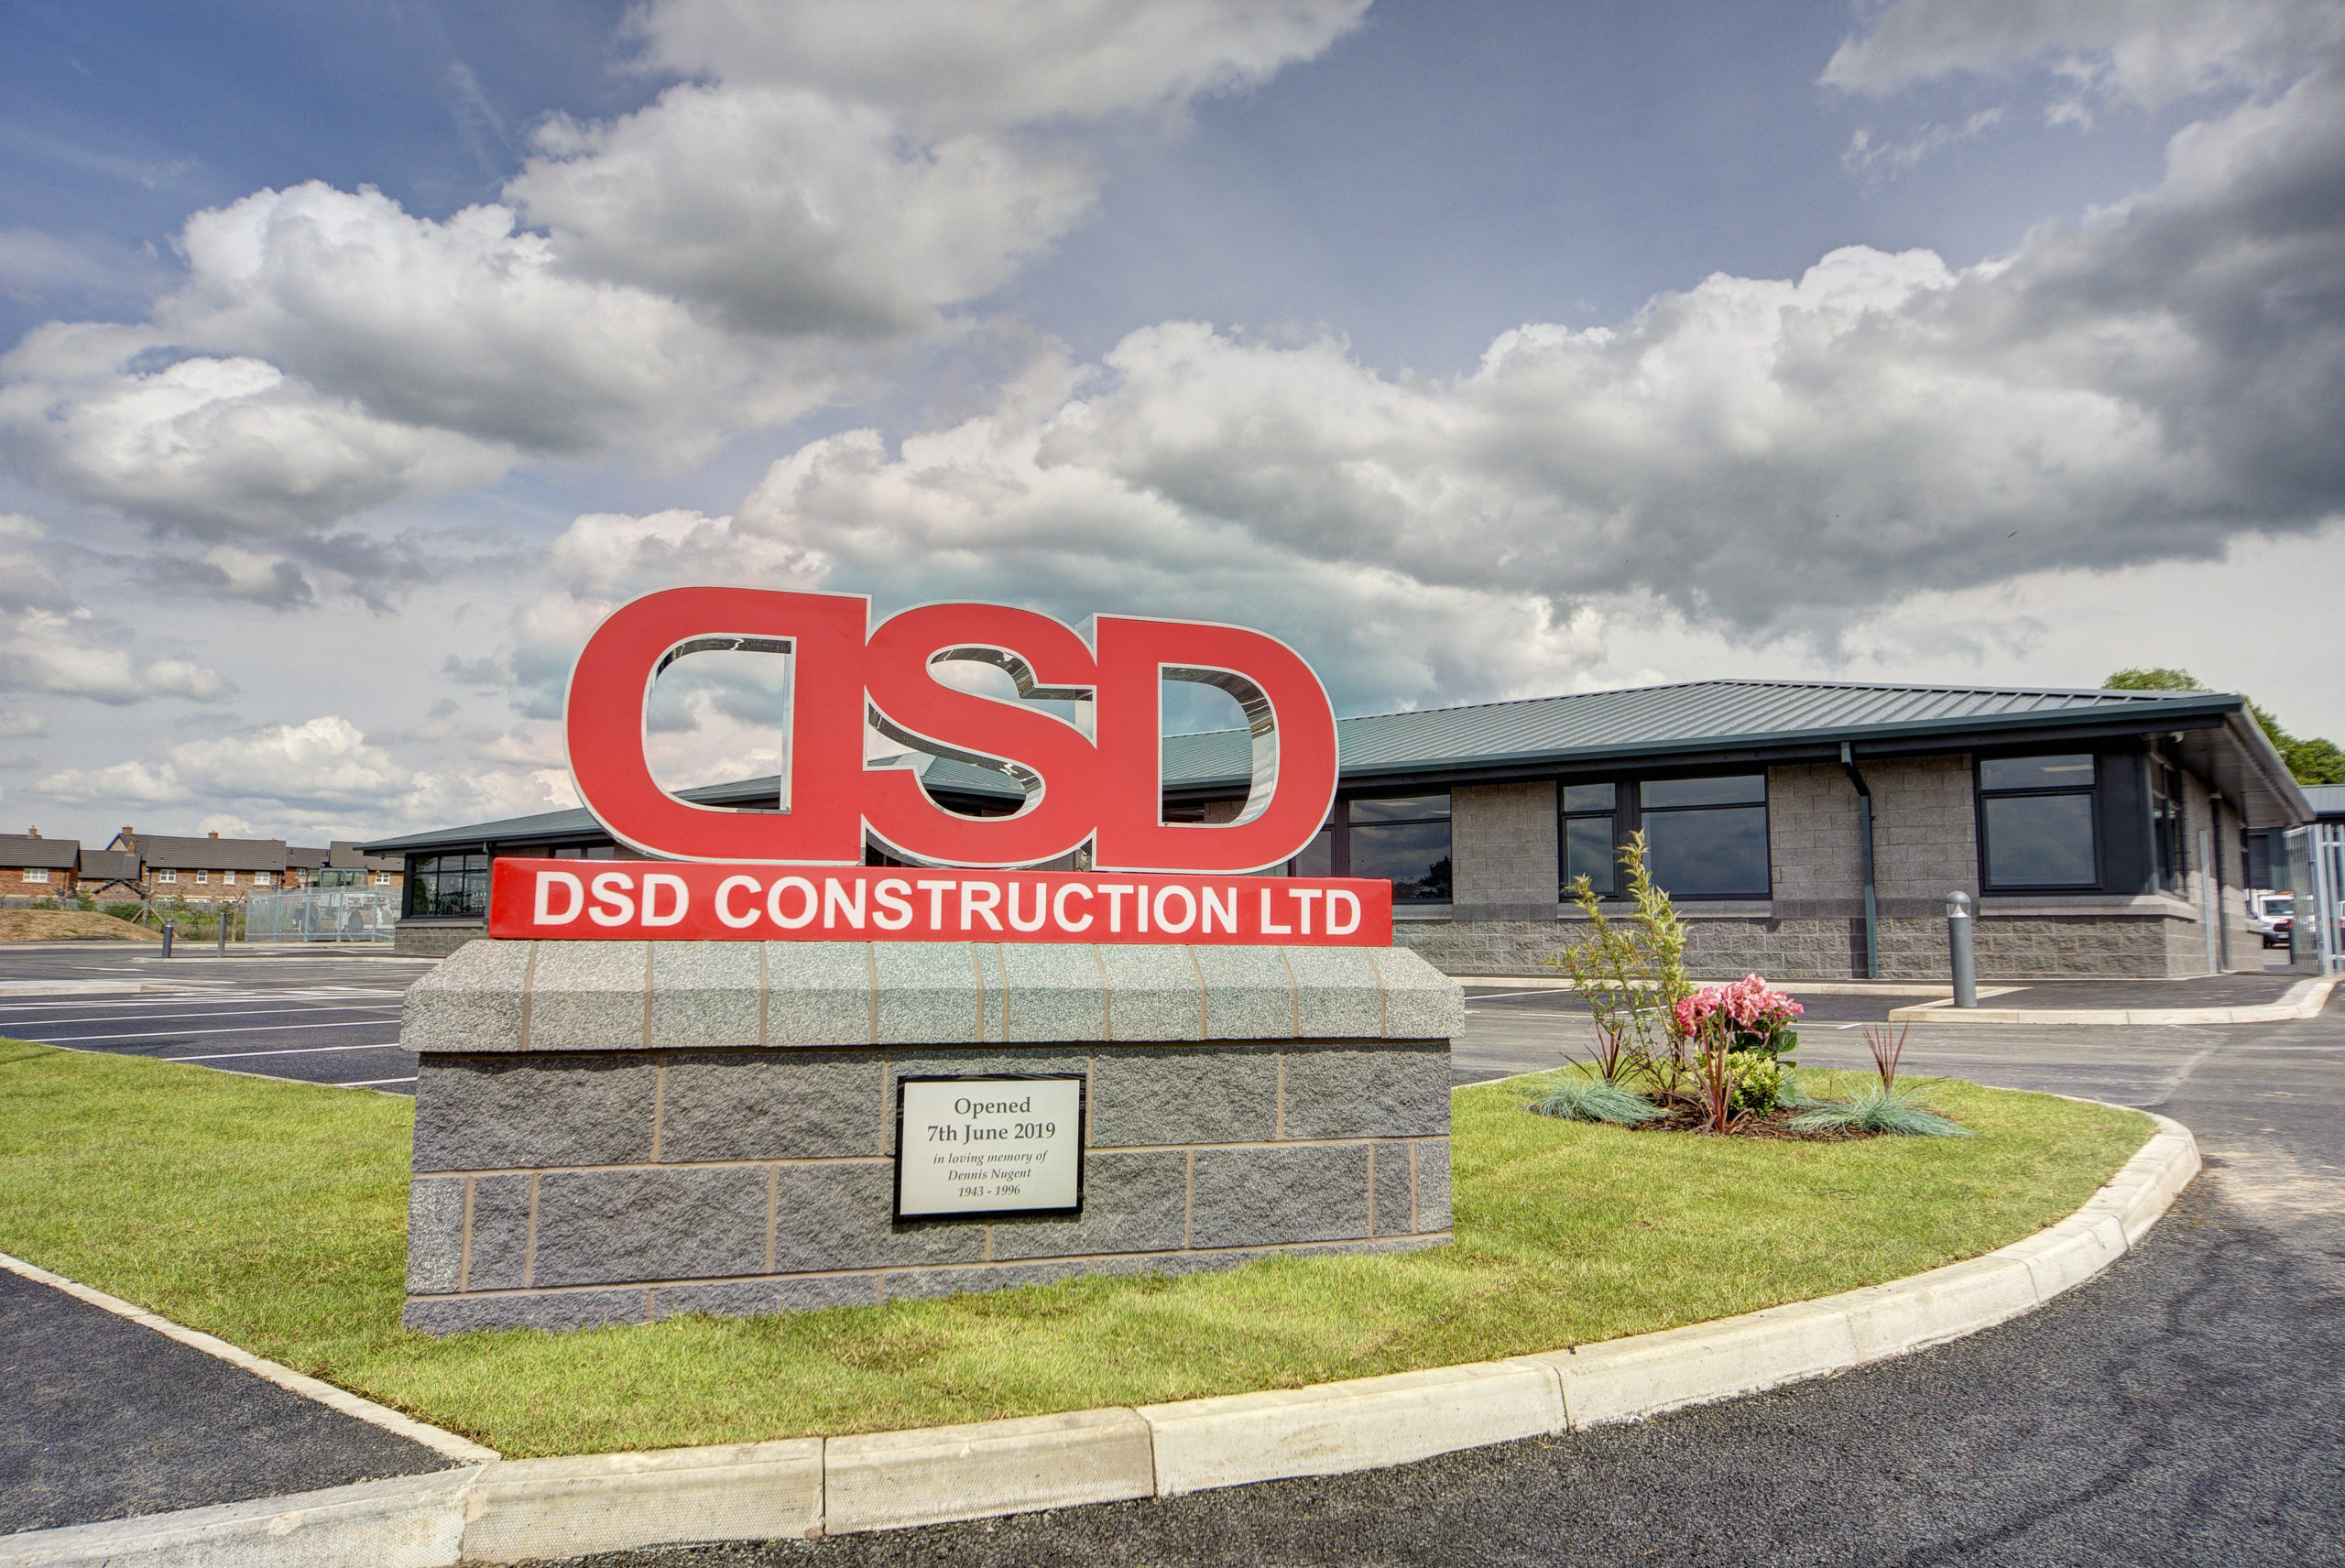 Large DSD sign in front of building